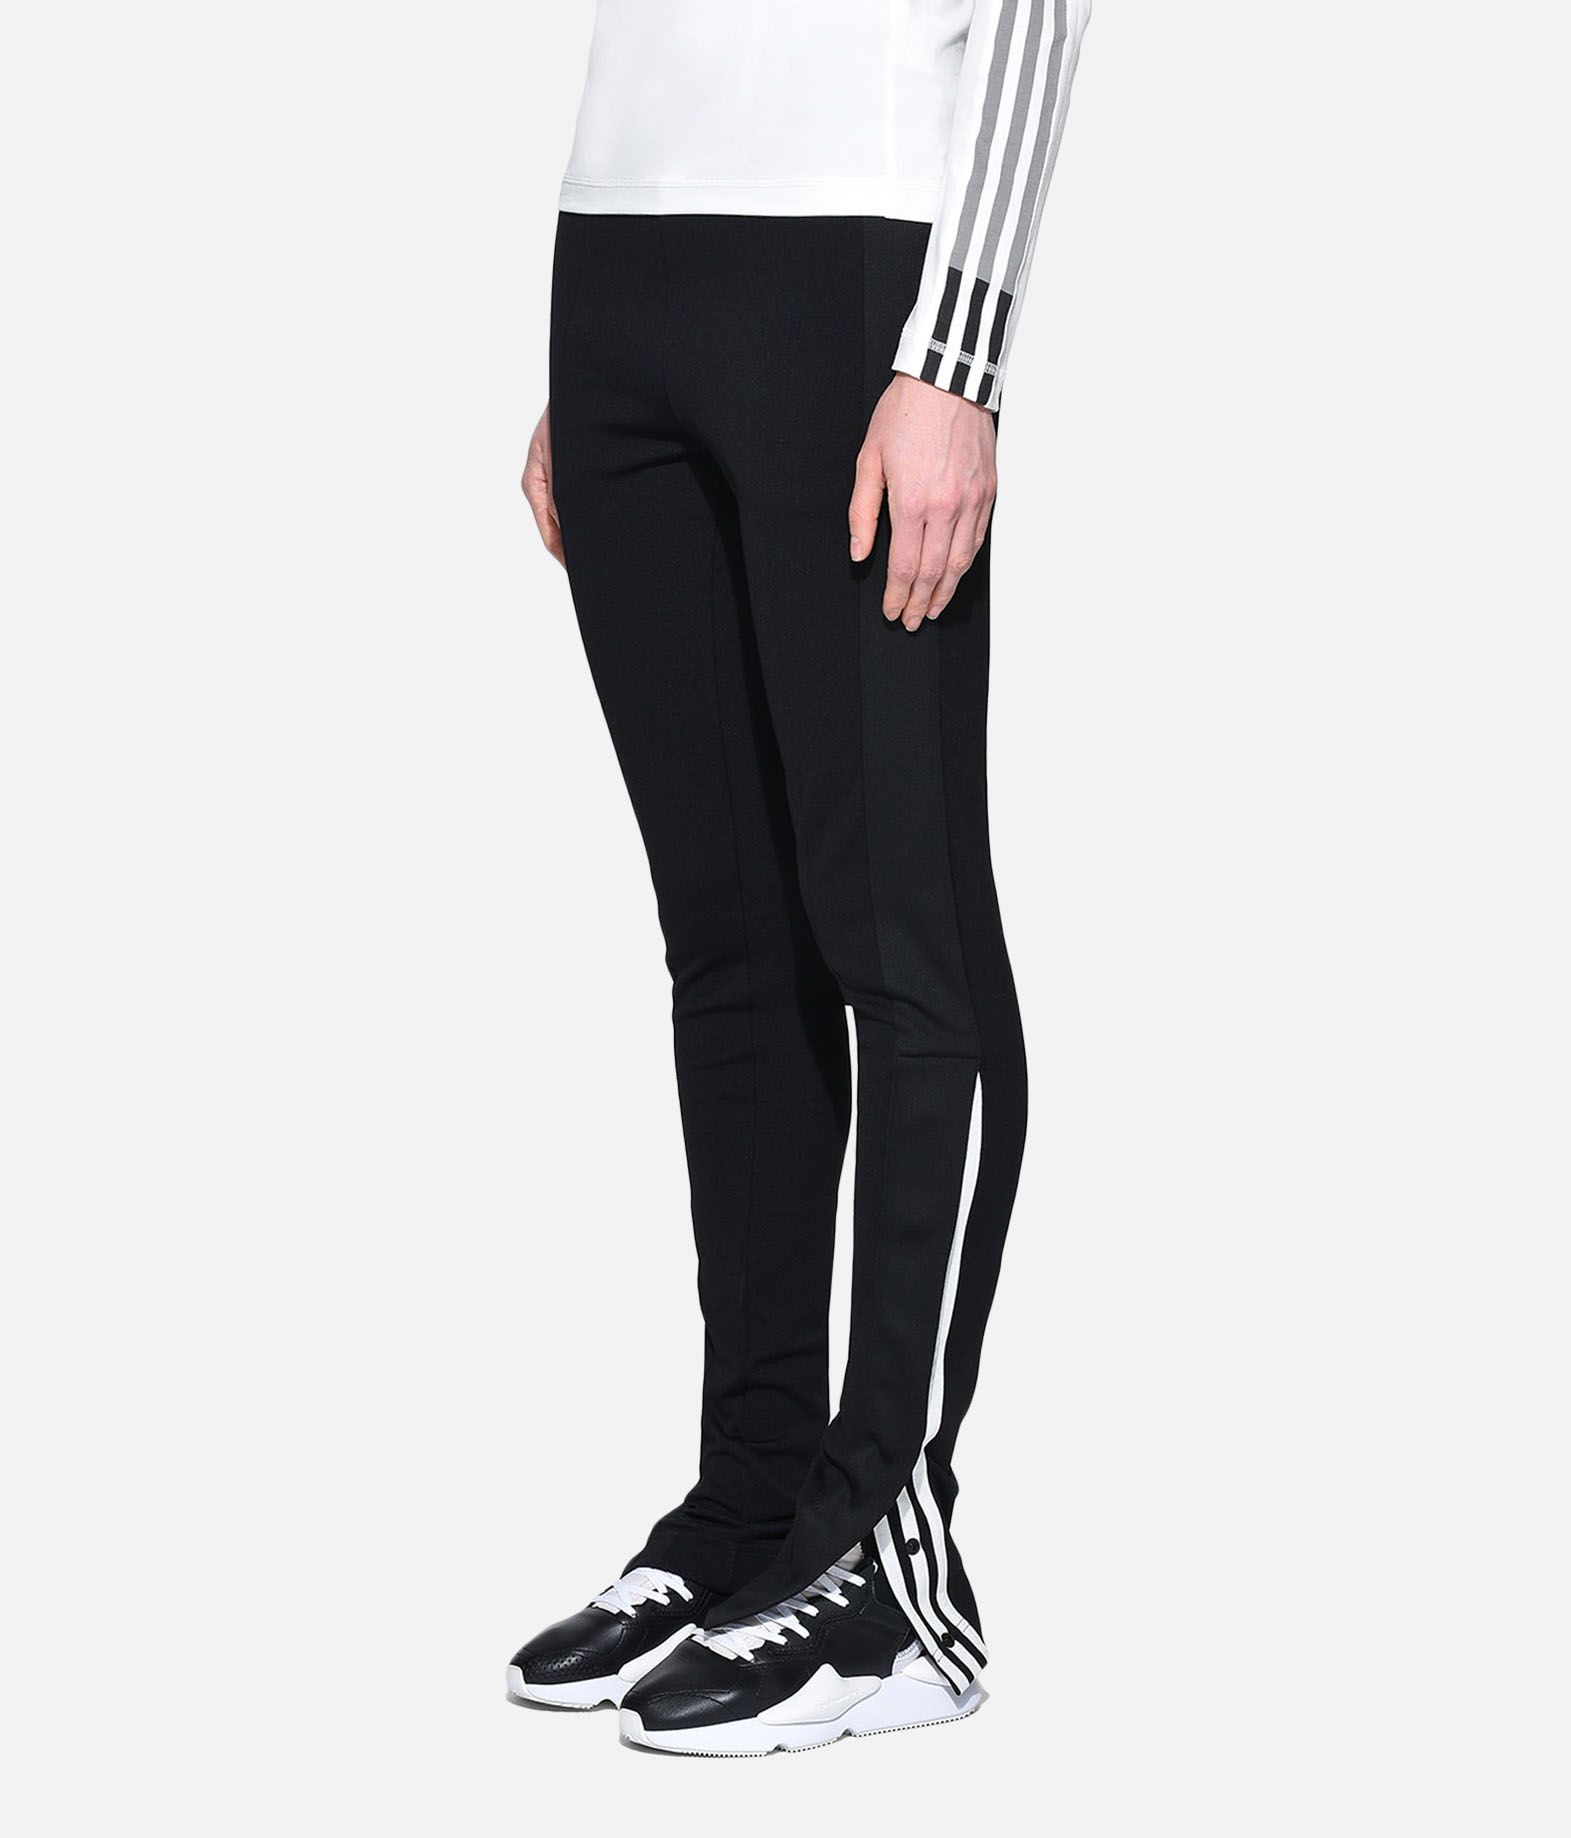 Y-3 Y-3 3-Stripes Firebird Track Pants Track pant Woman e